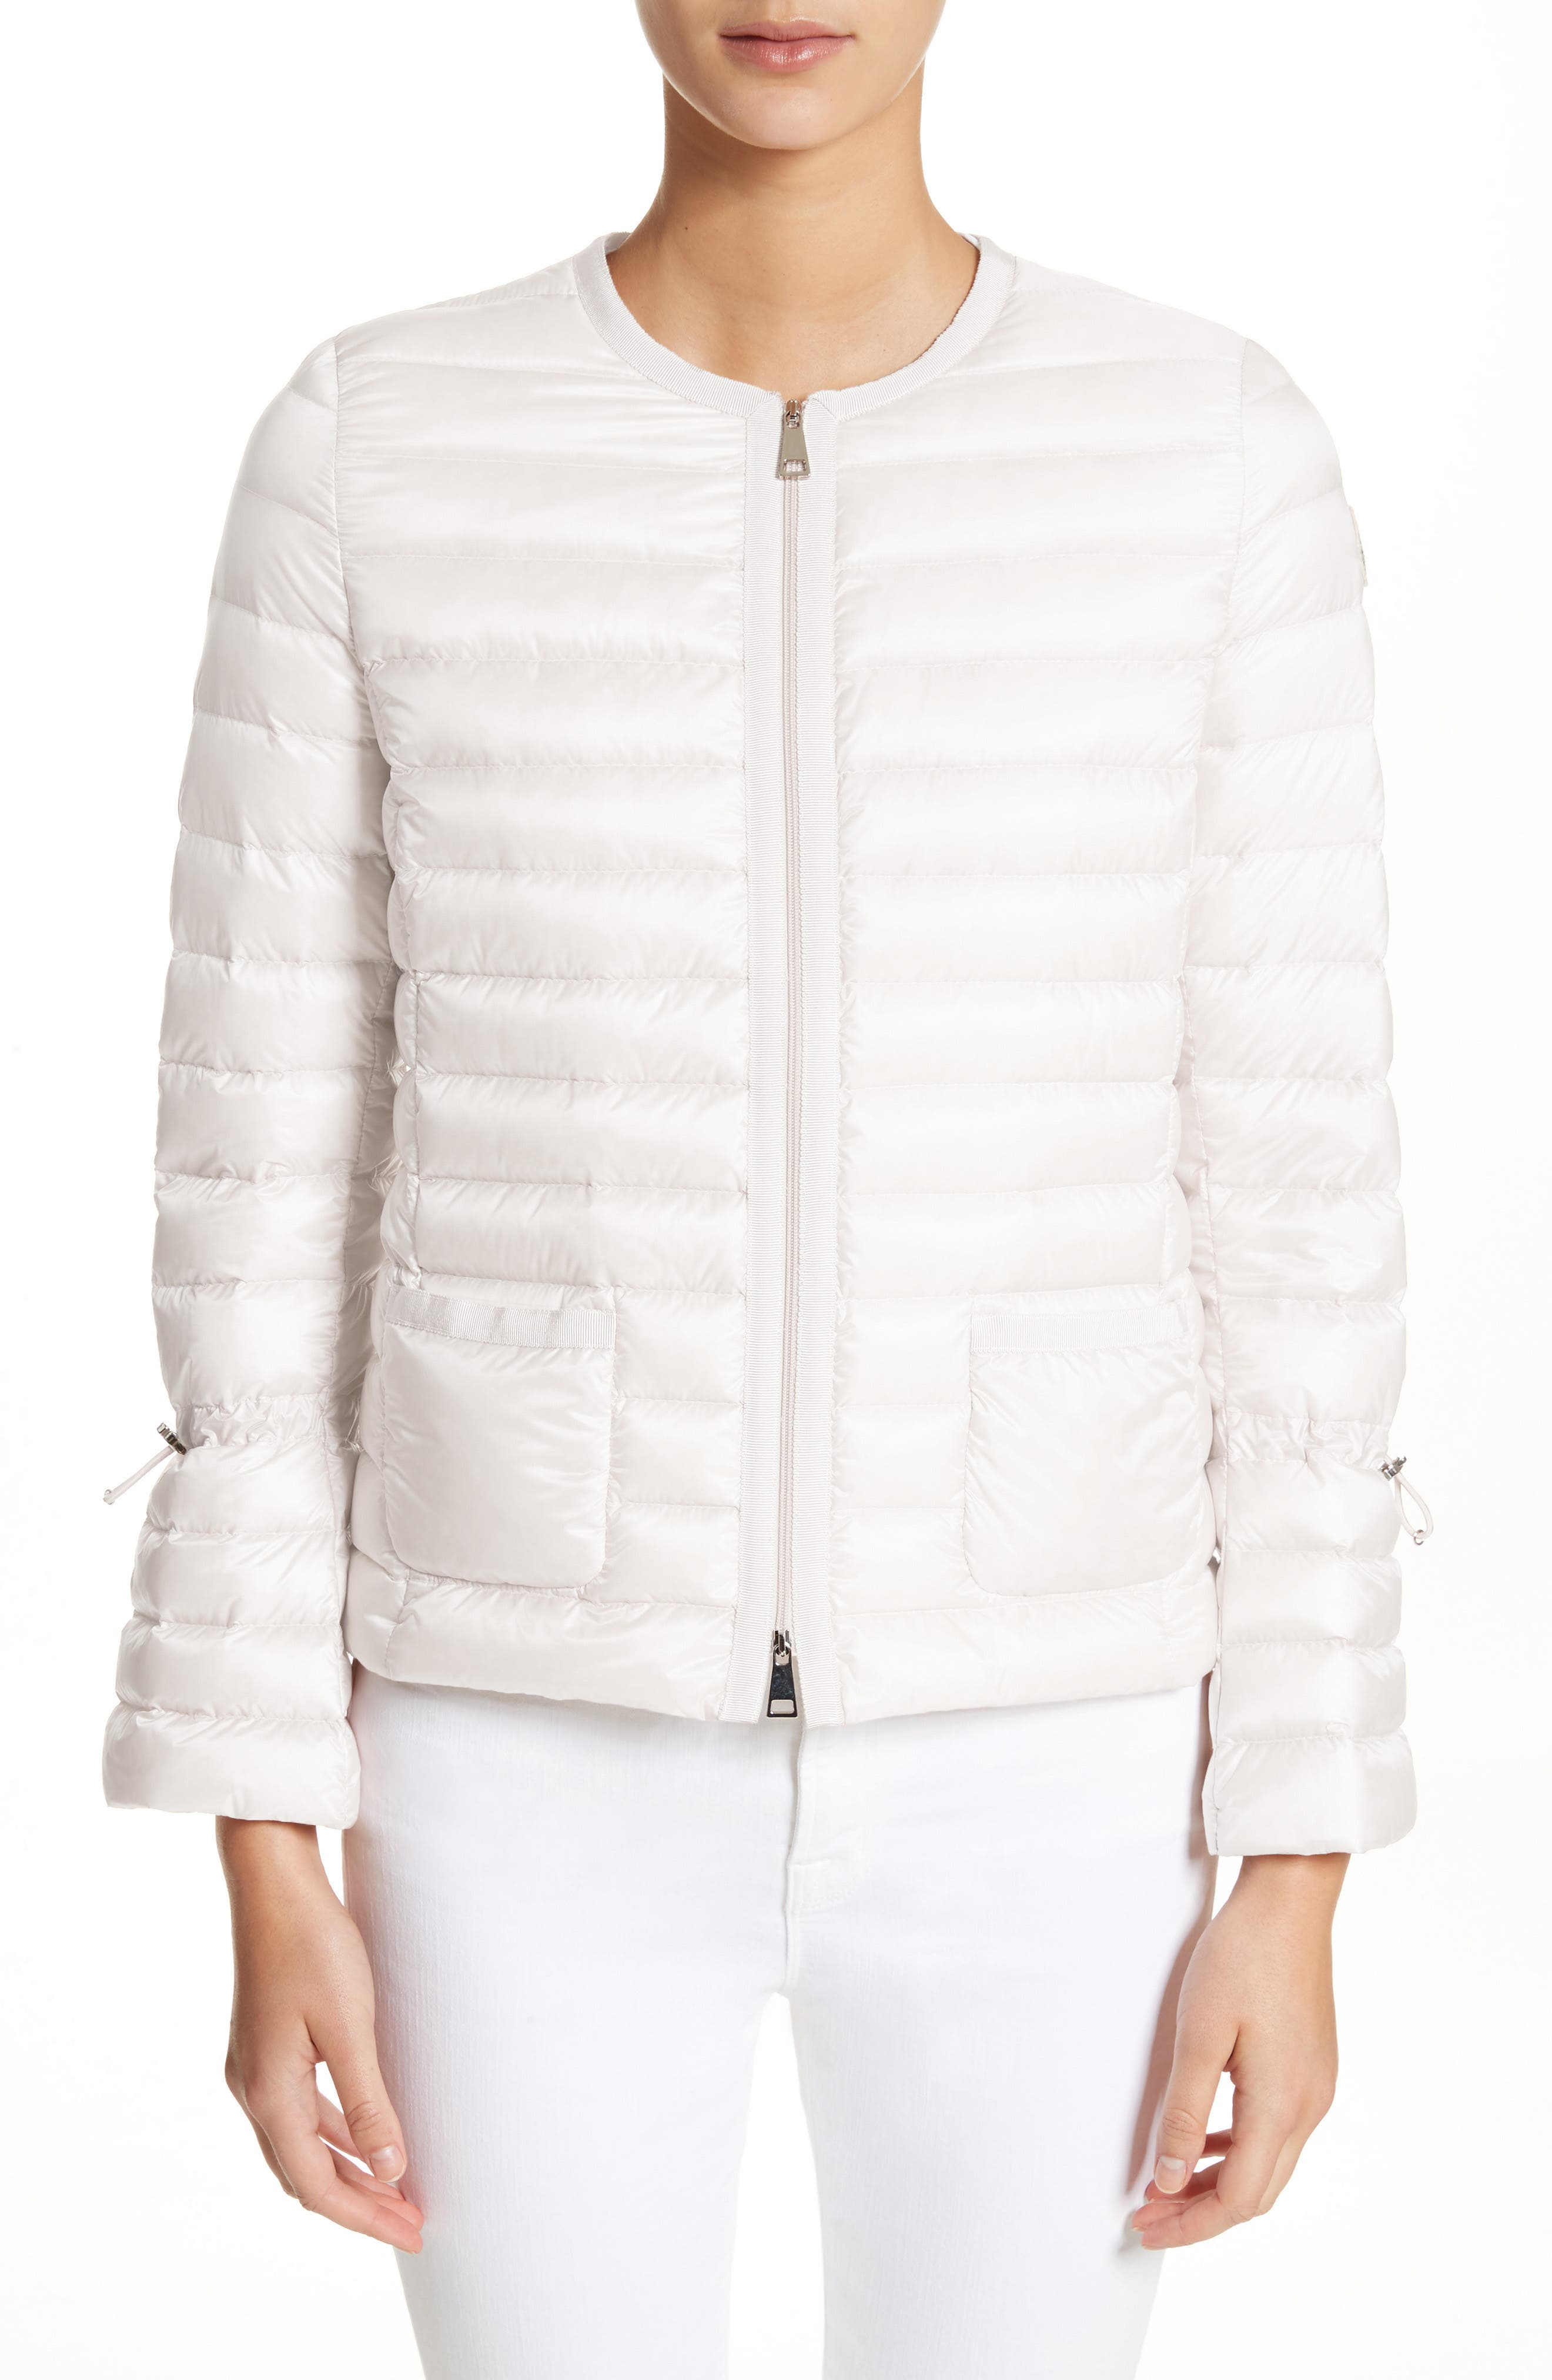 Almandin Quilted Puffer Jacket,                         Main,                         color, 101